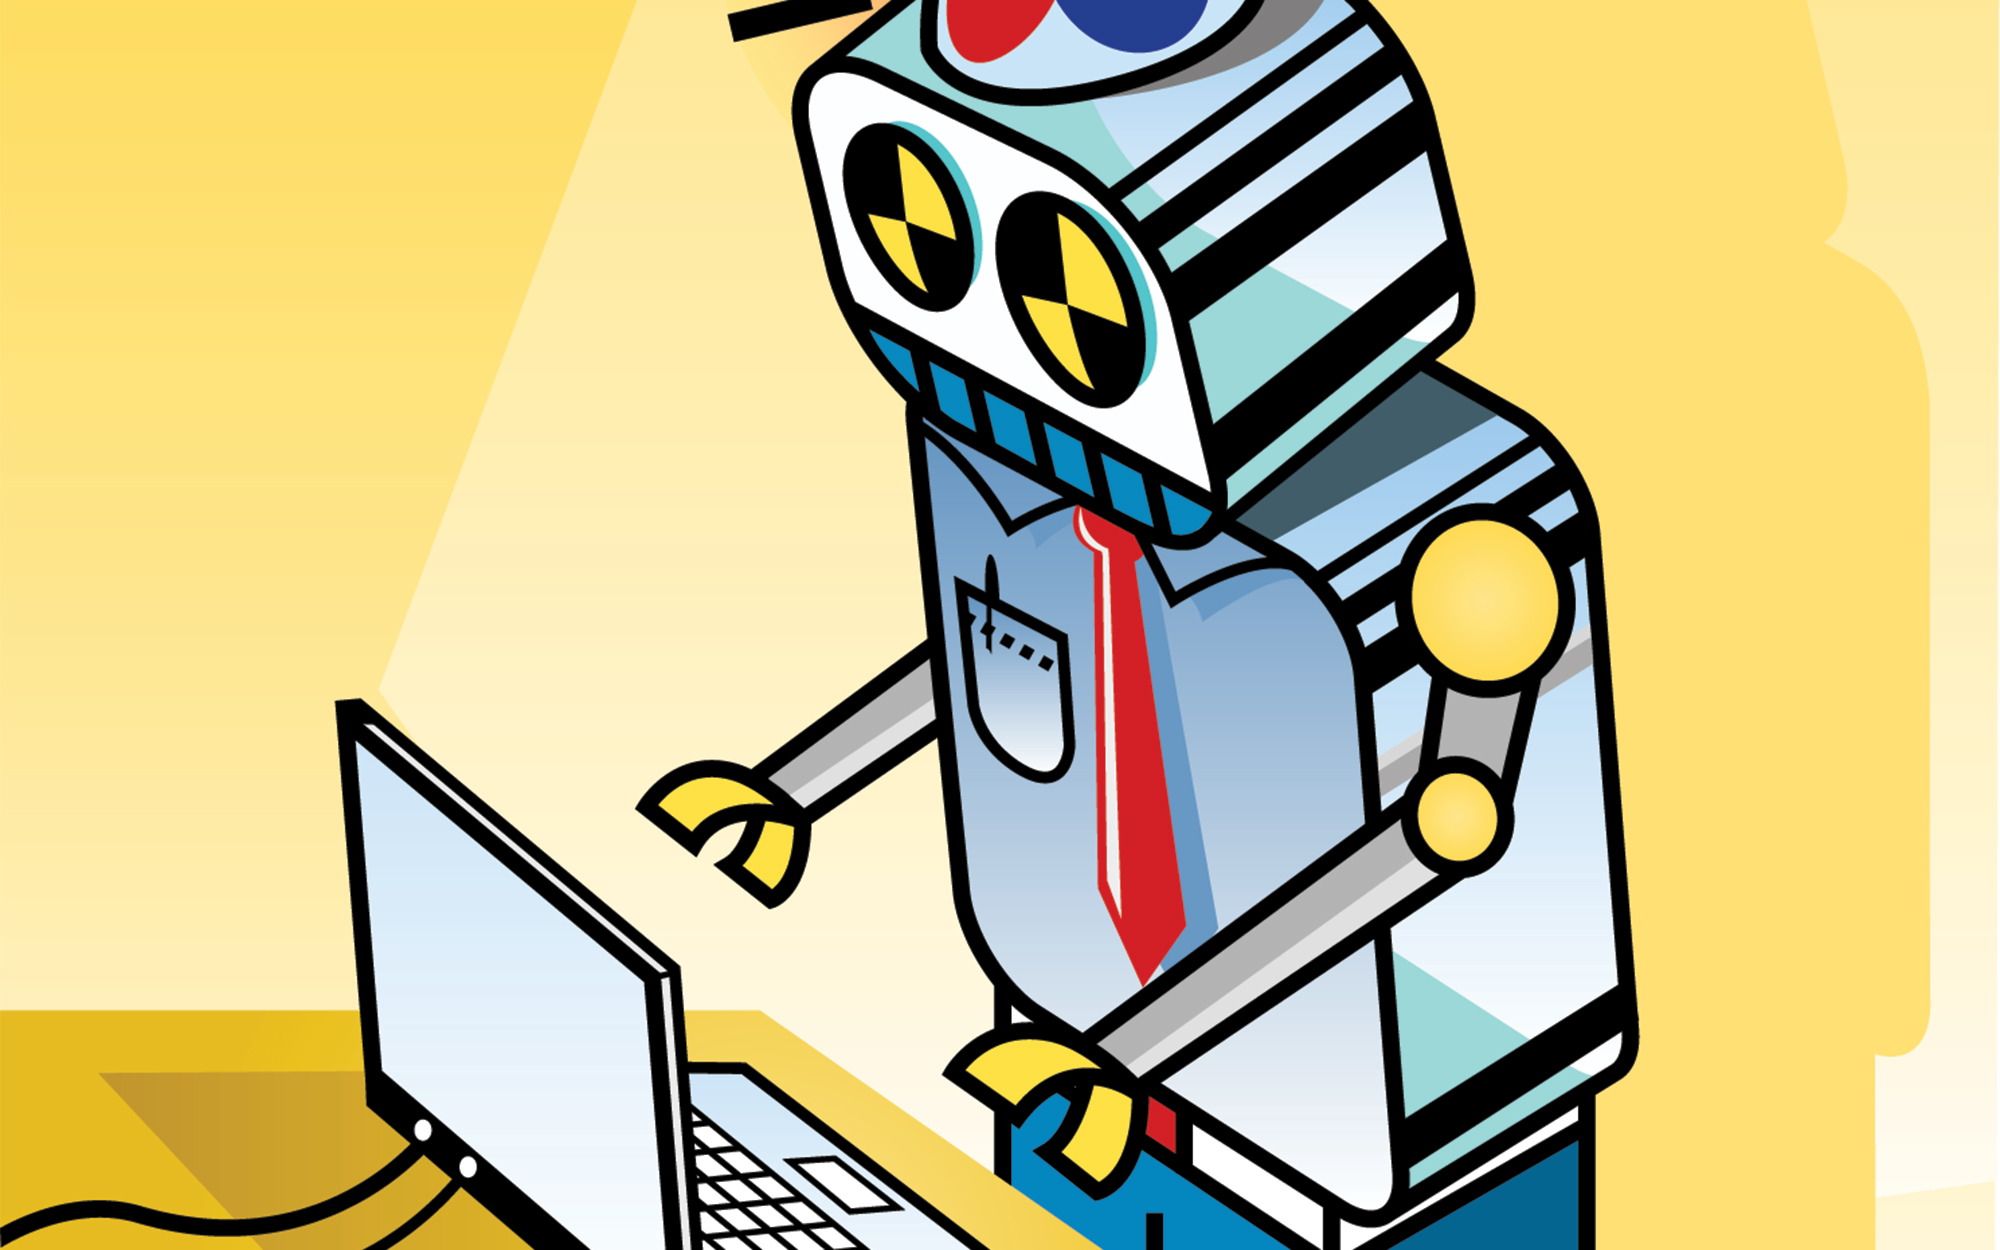 Robot typing illustration.